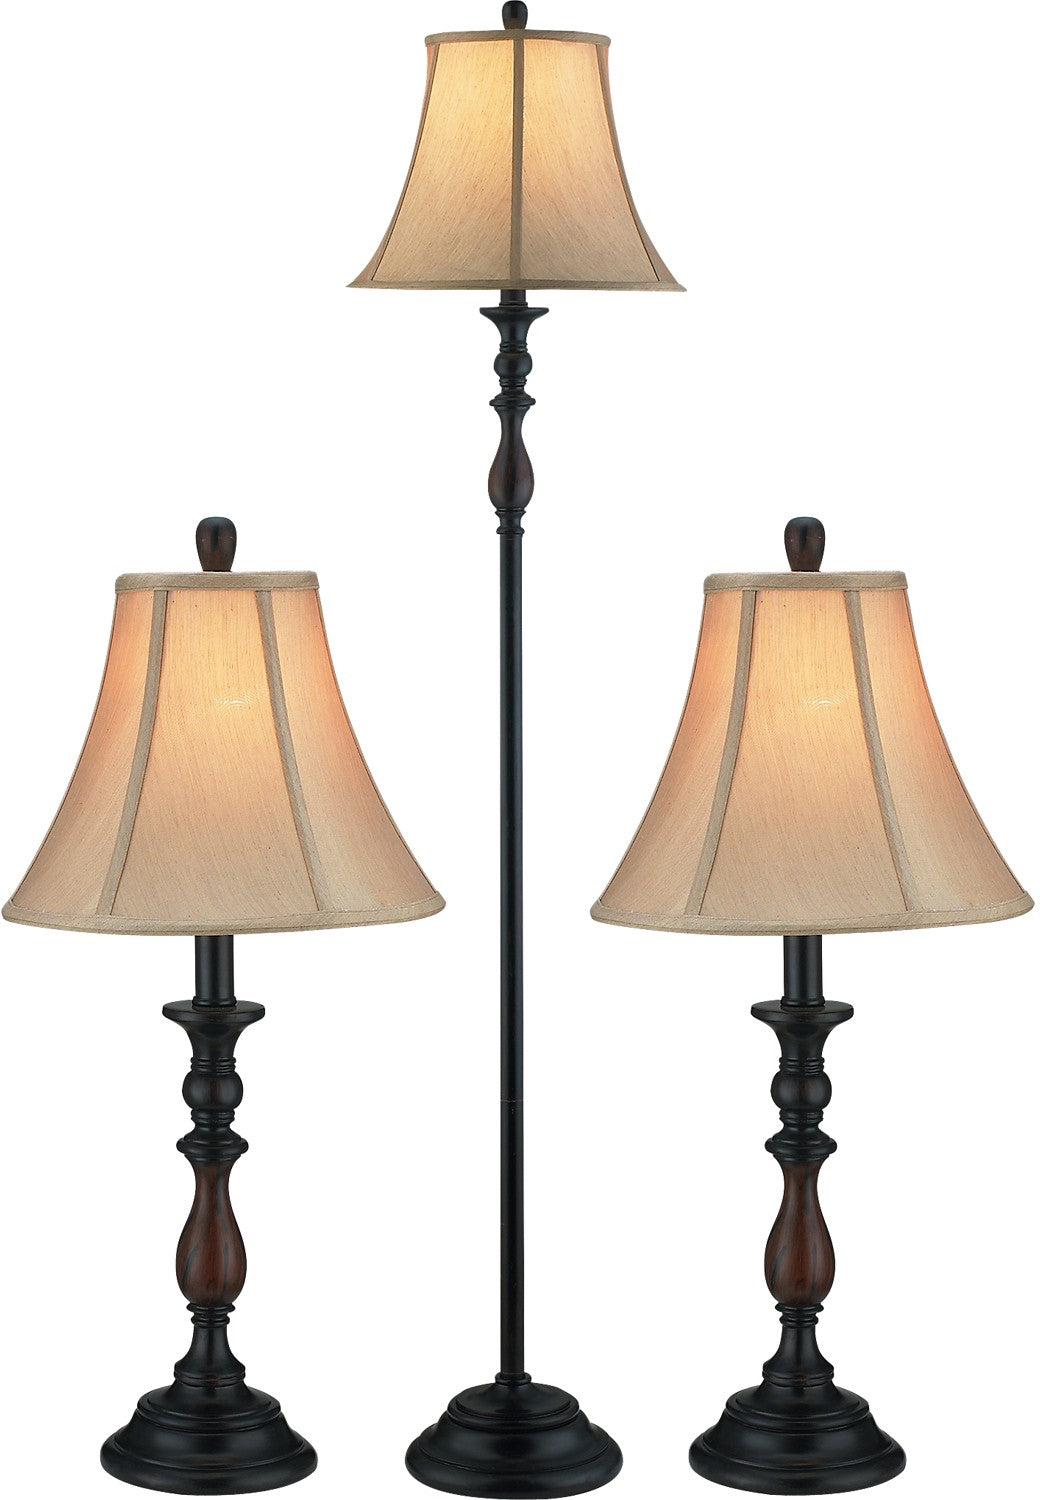 Bronze Finish 3 Piece Floor And Two Tables Lamps Set With Bell Shade